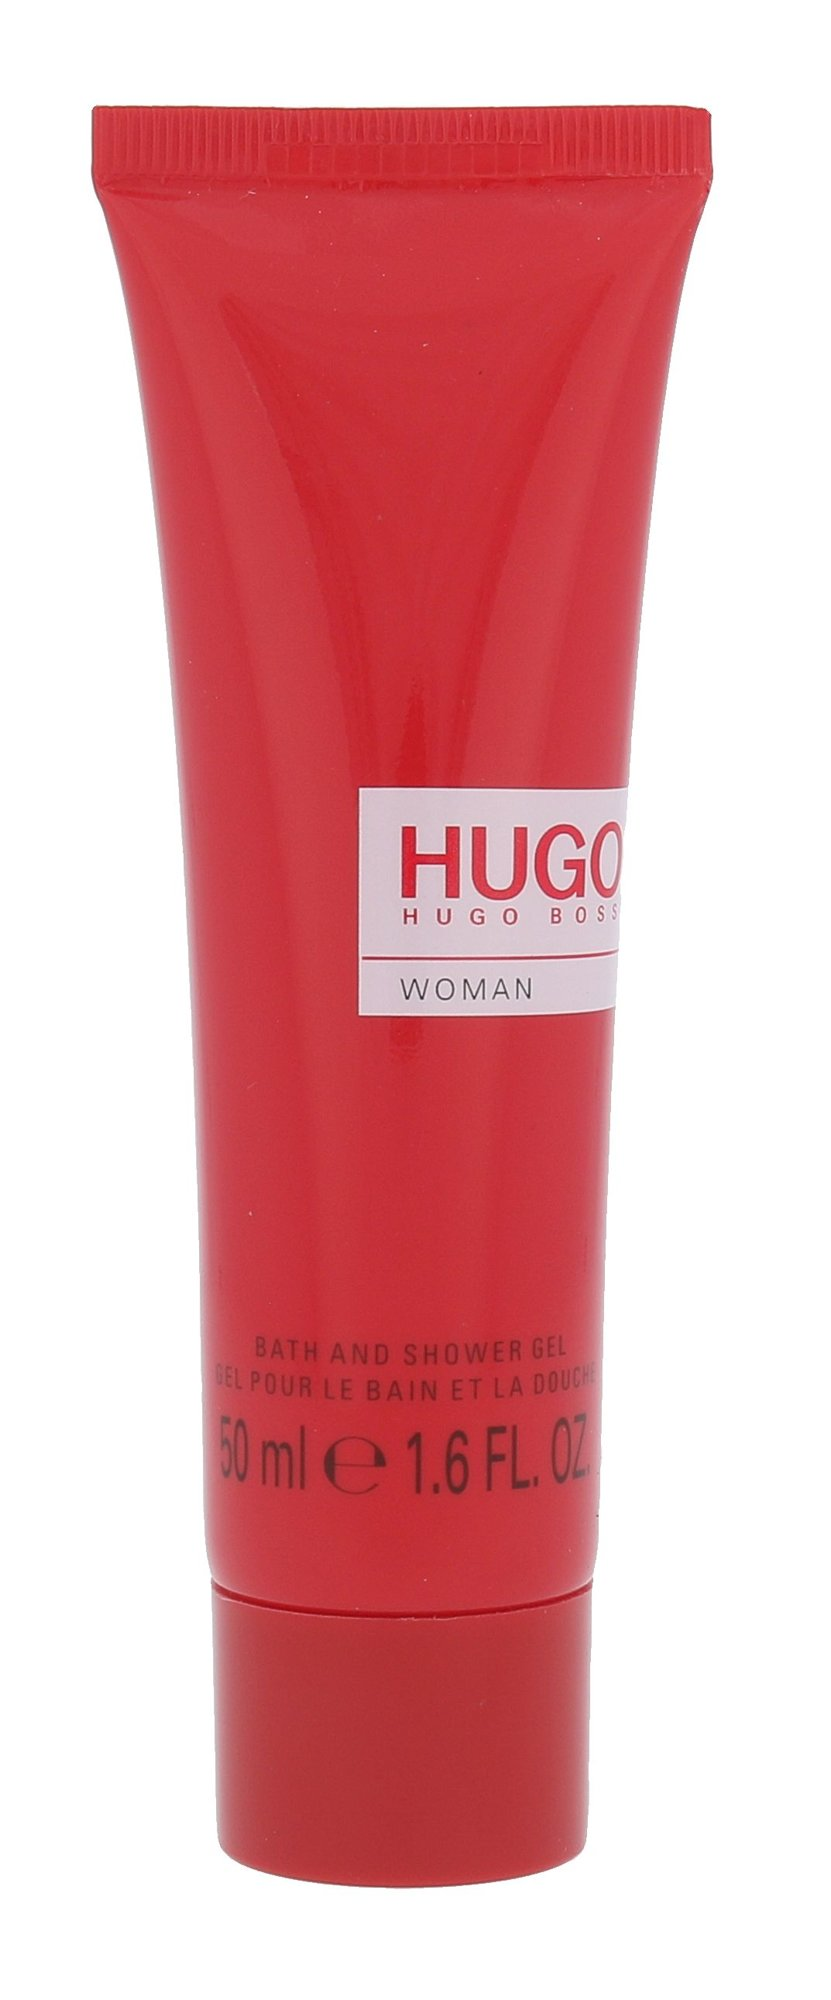 HUGO BOSS Hugo Woman Shower gel 50ml